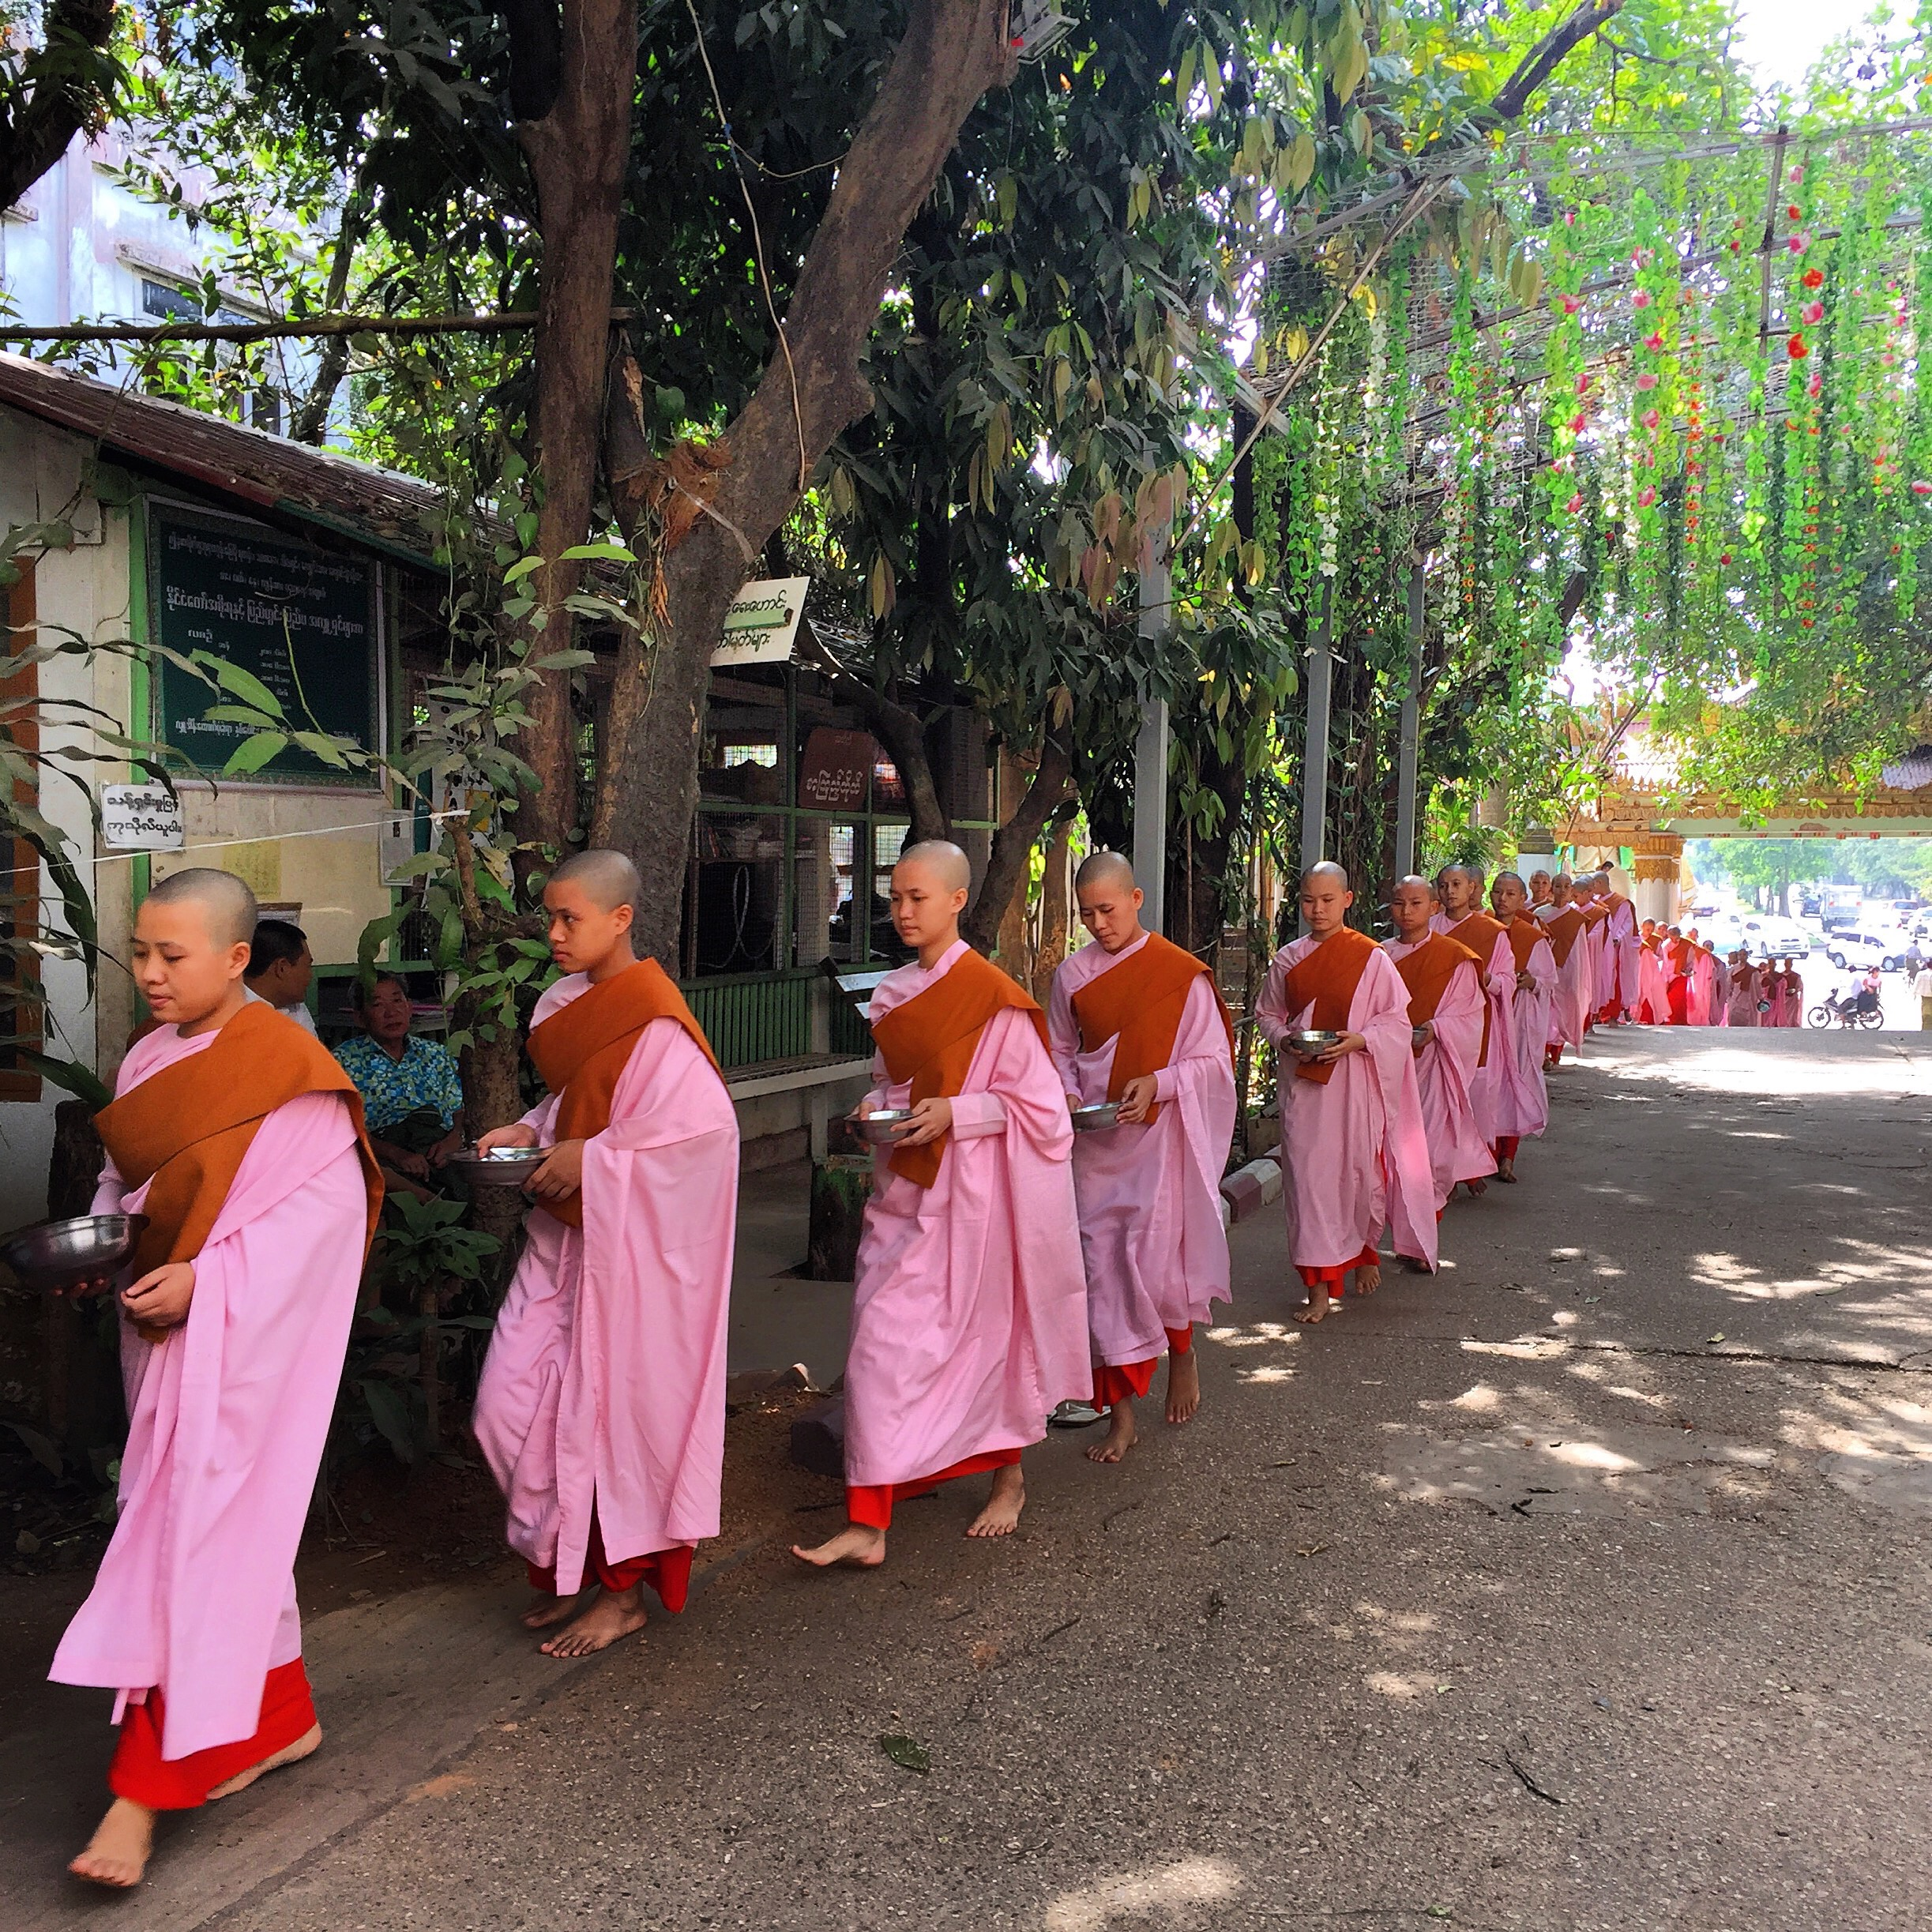 Every morning in most cities, towns, and villages a steady stream of nuns and monks can be seen collecting their daily alms (food) from the townspeople.